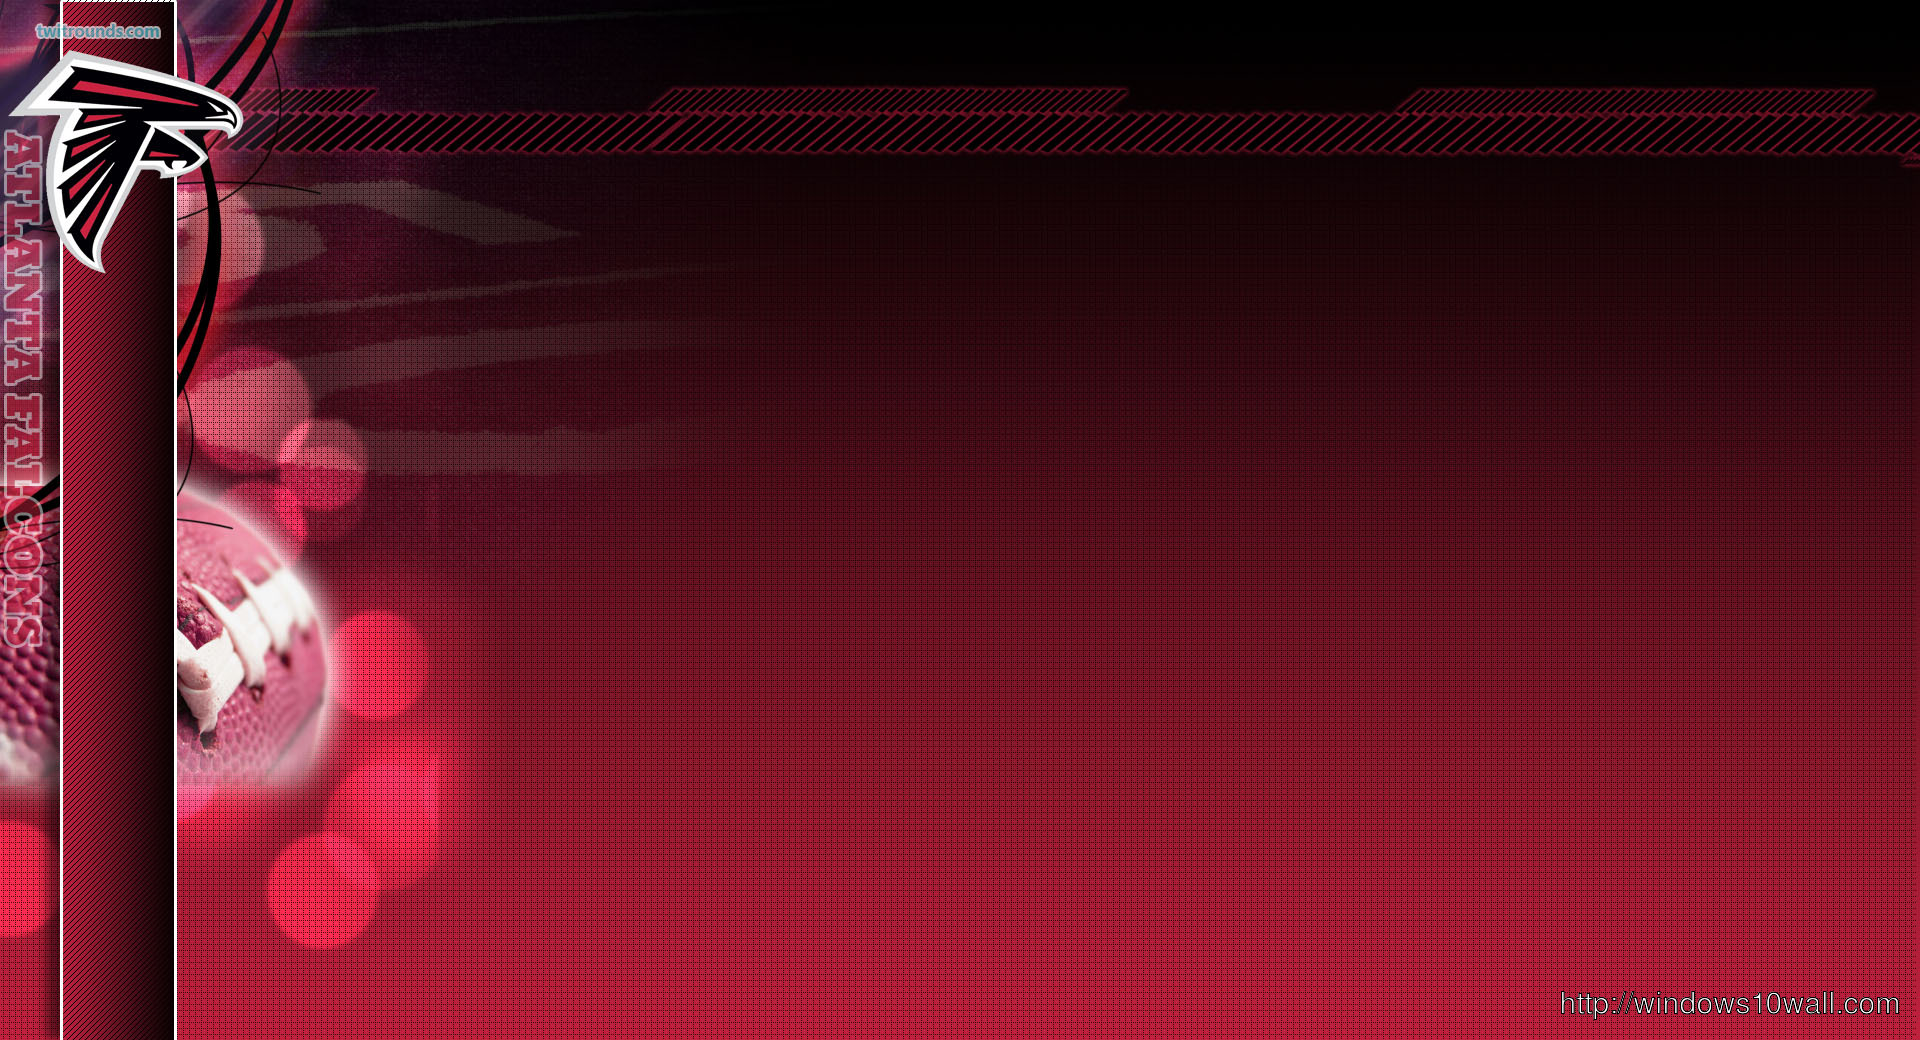 Atlanta Falcons Reddish Twitter Background Wallpaper